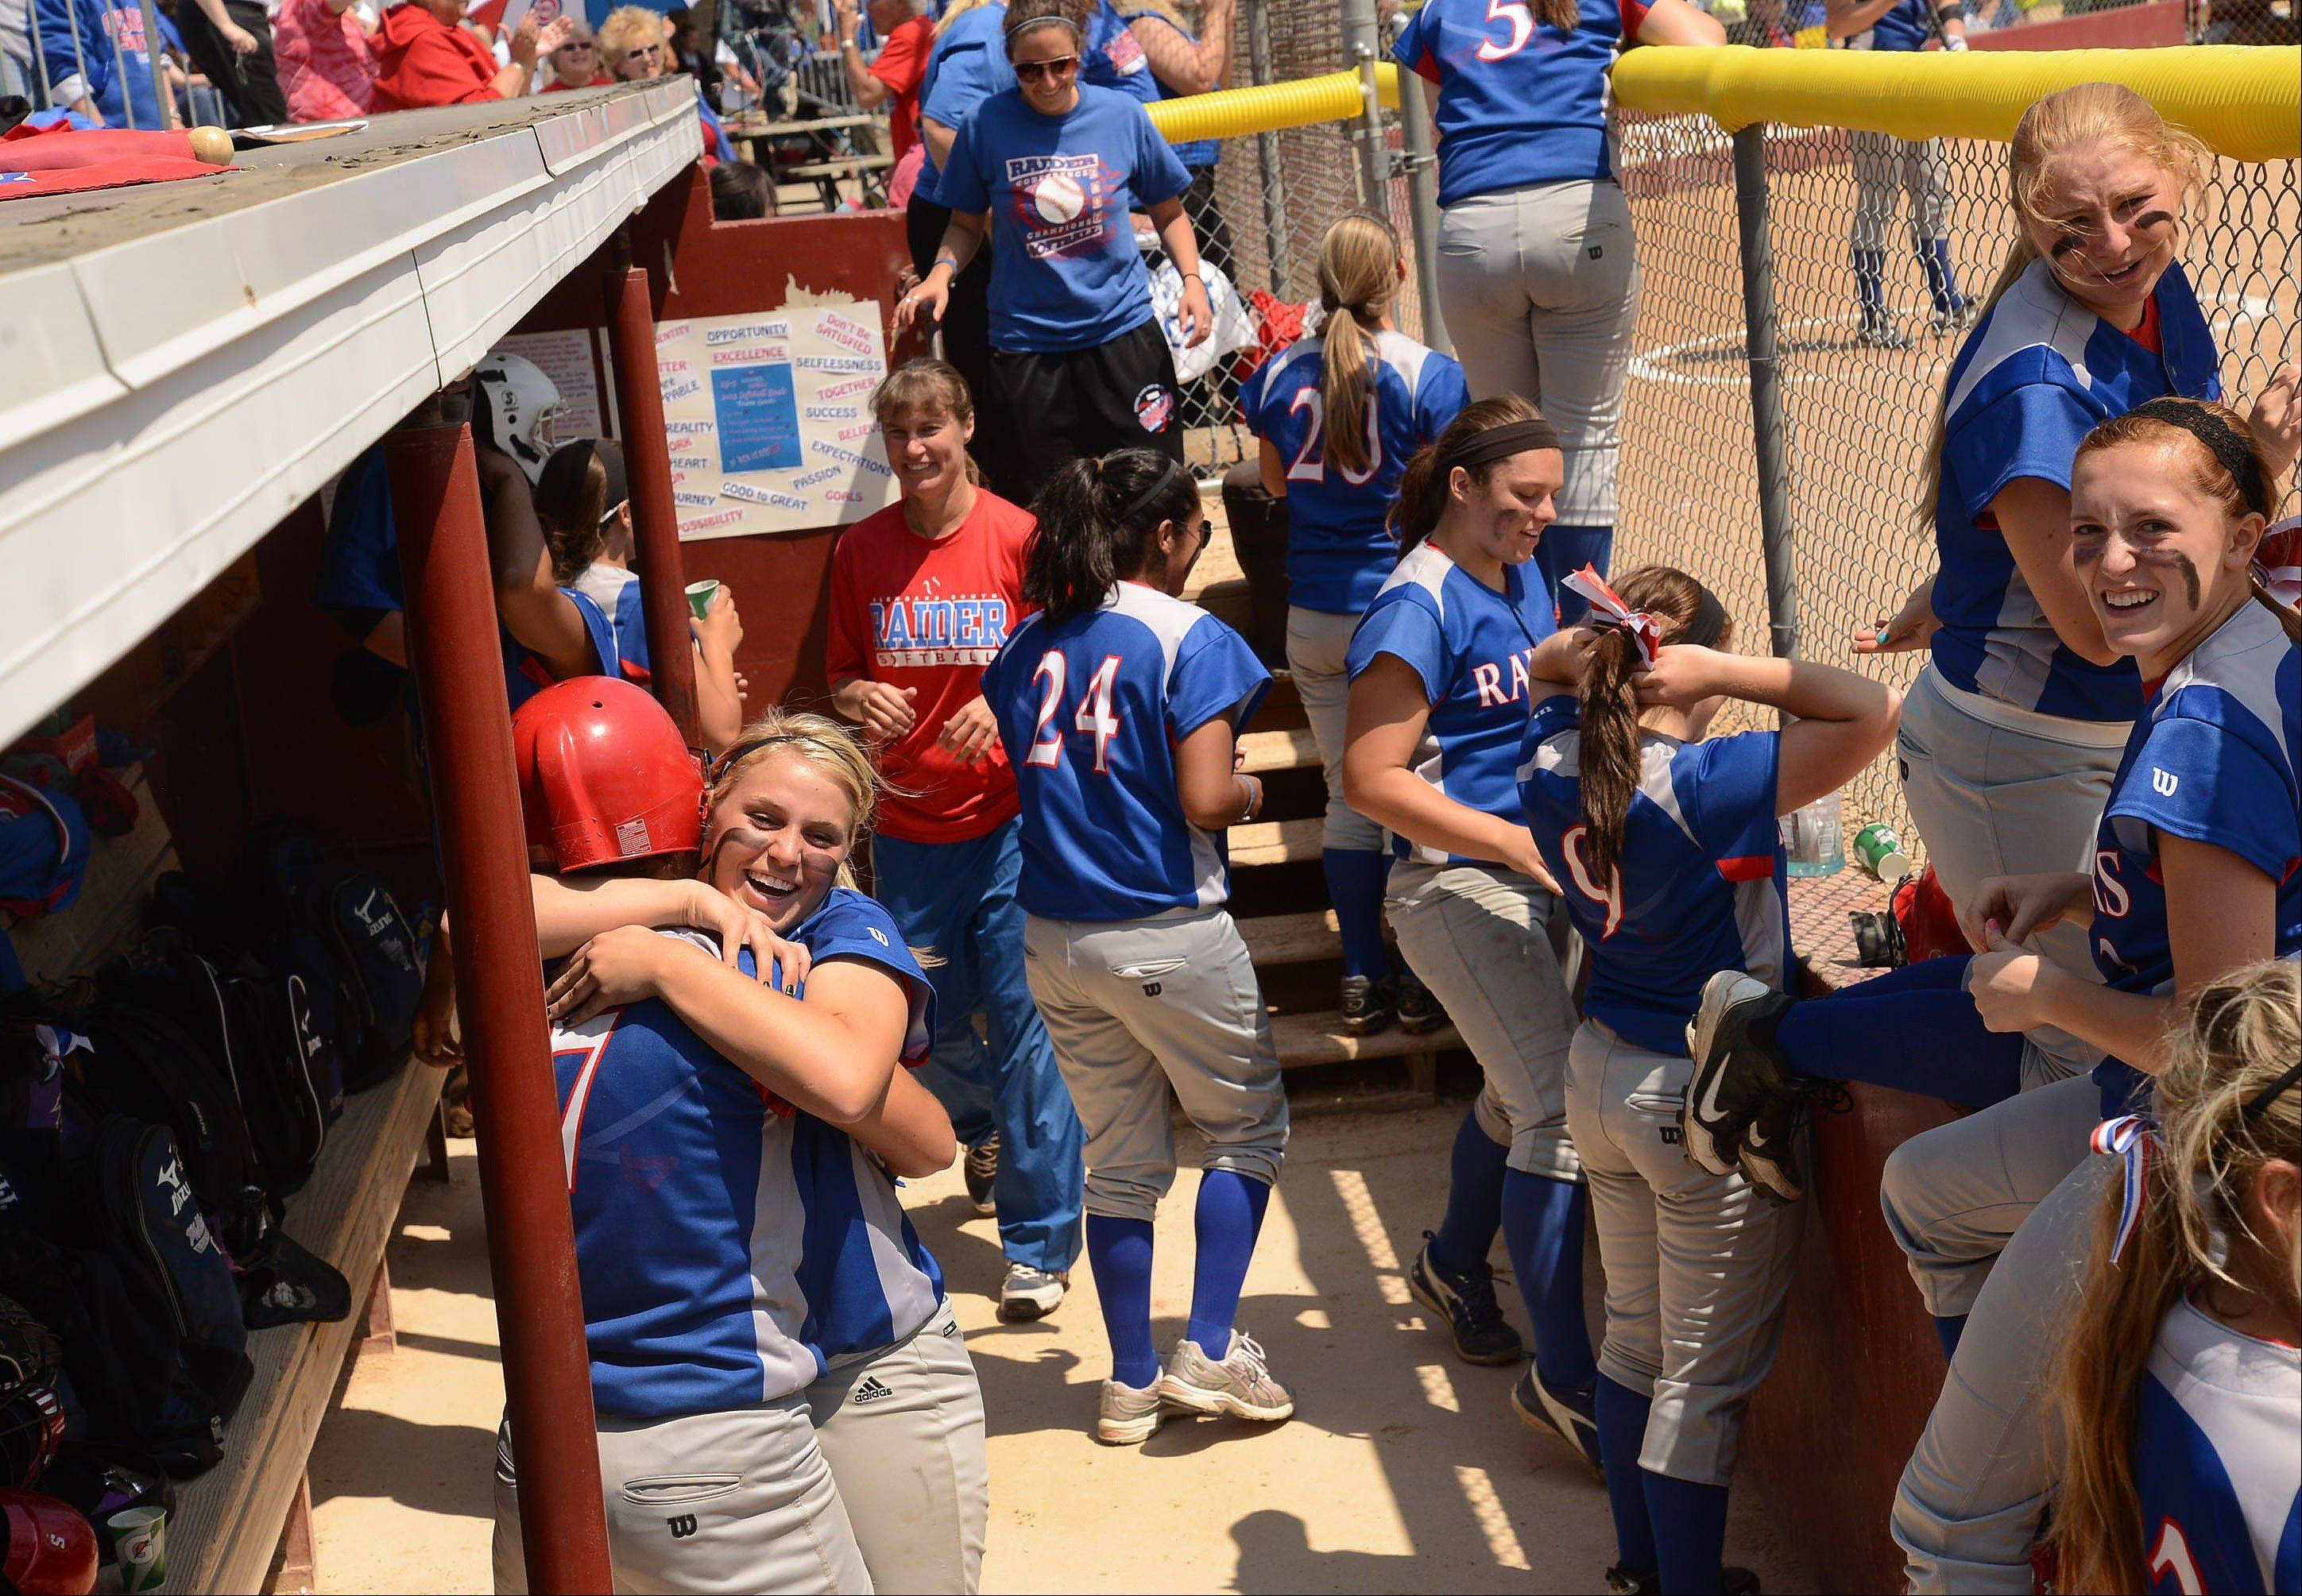 Glenbard South's Hannah Taylor is hugged by pitcher Stephanie Chitkowski after hitting a two-run home run in the 4th inning of the Class 3A state semifinal between Glenbard South and Tinley Park.